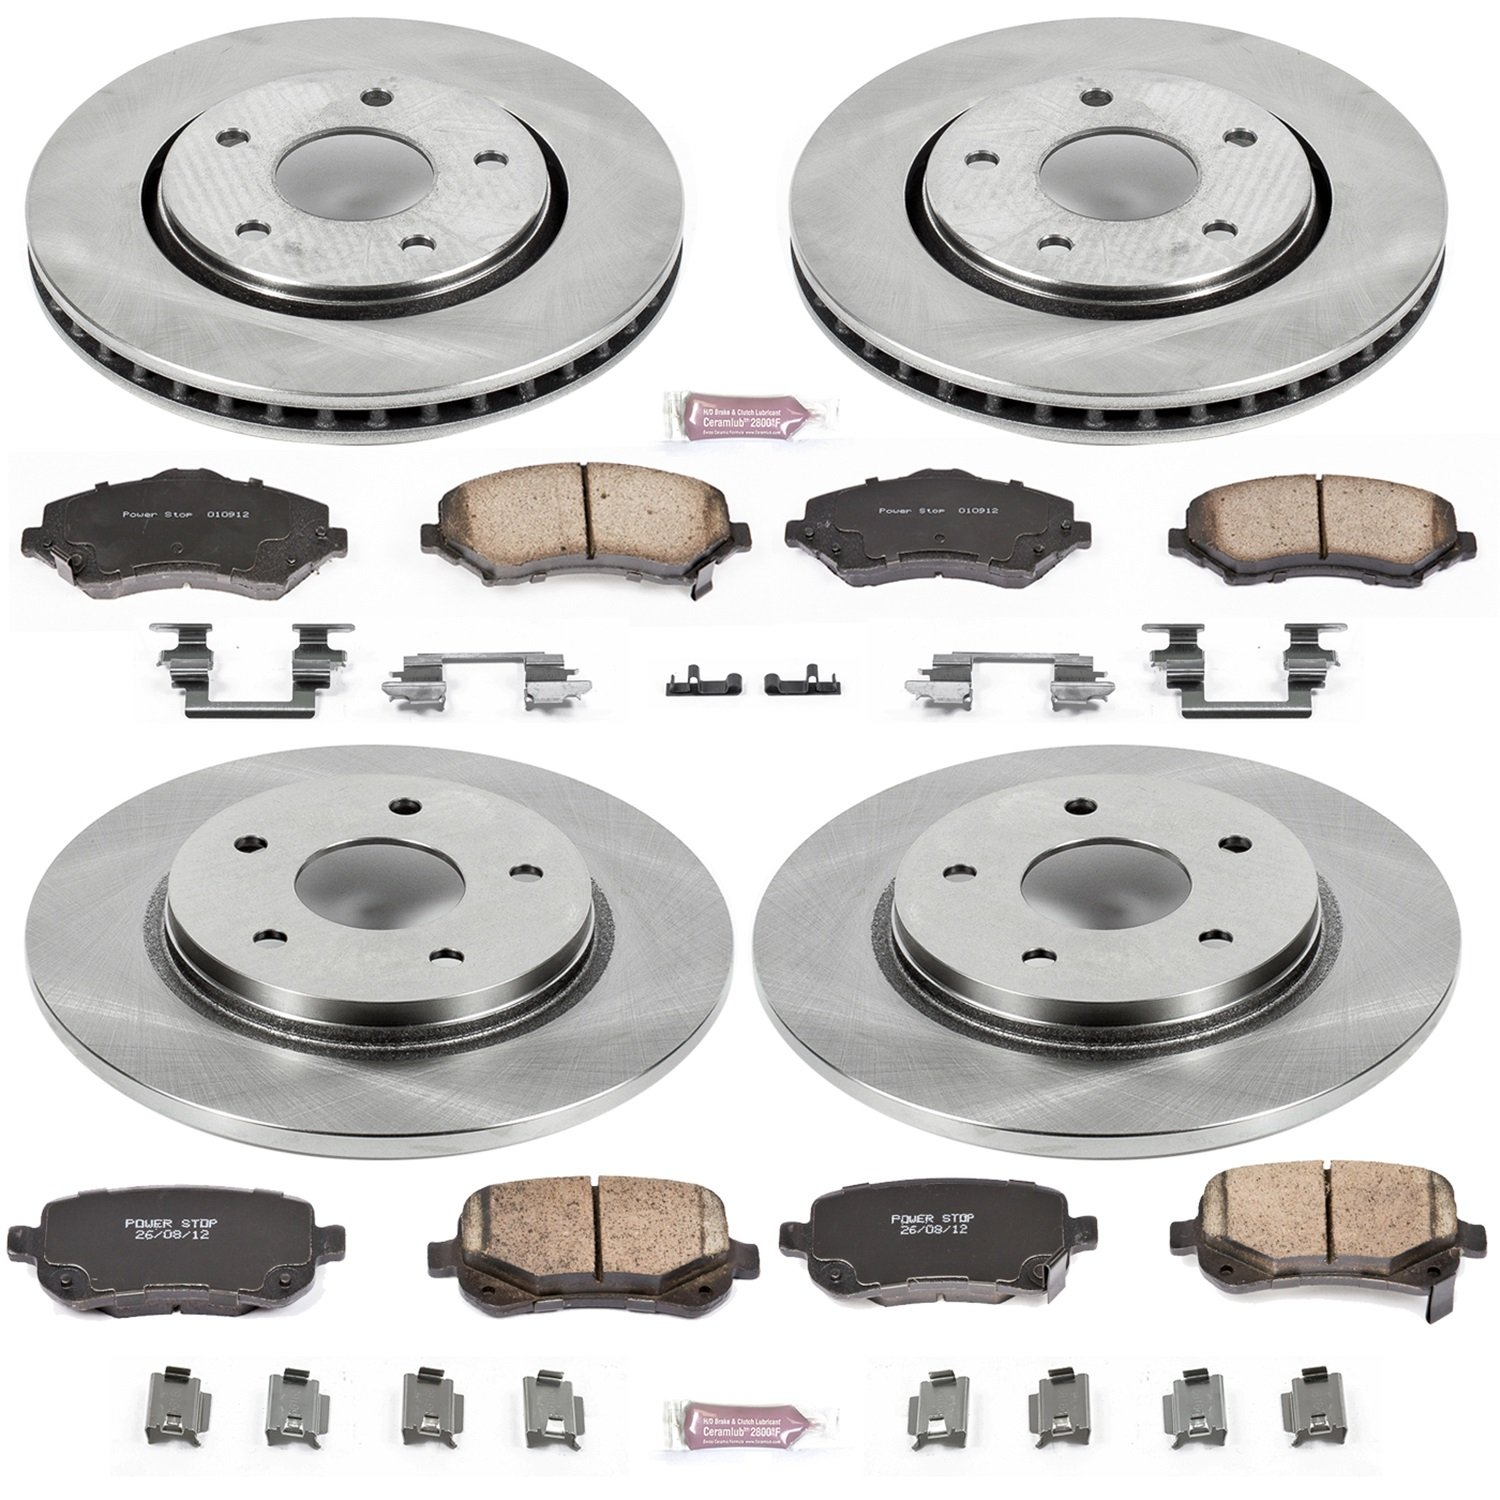 Autospecialty KOE4015 1-Click OE Replacement Brake Kit by POWERSTOP (Image #2)